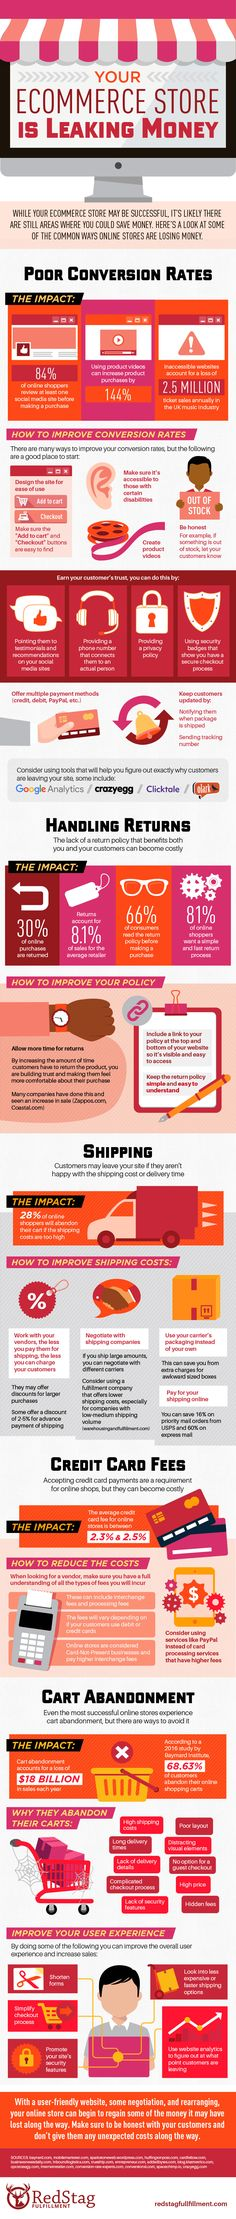 Your eCommerce Store is Leaking Money [Infographic]